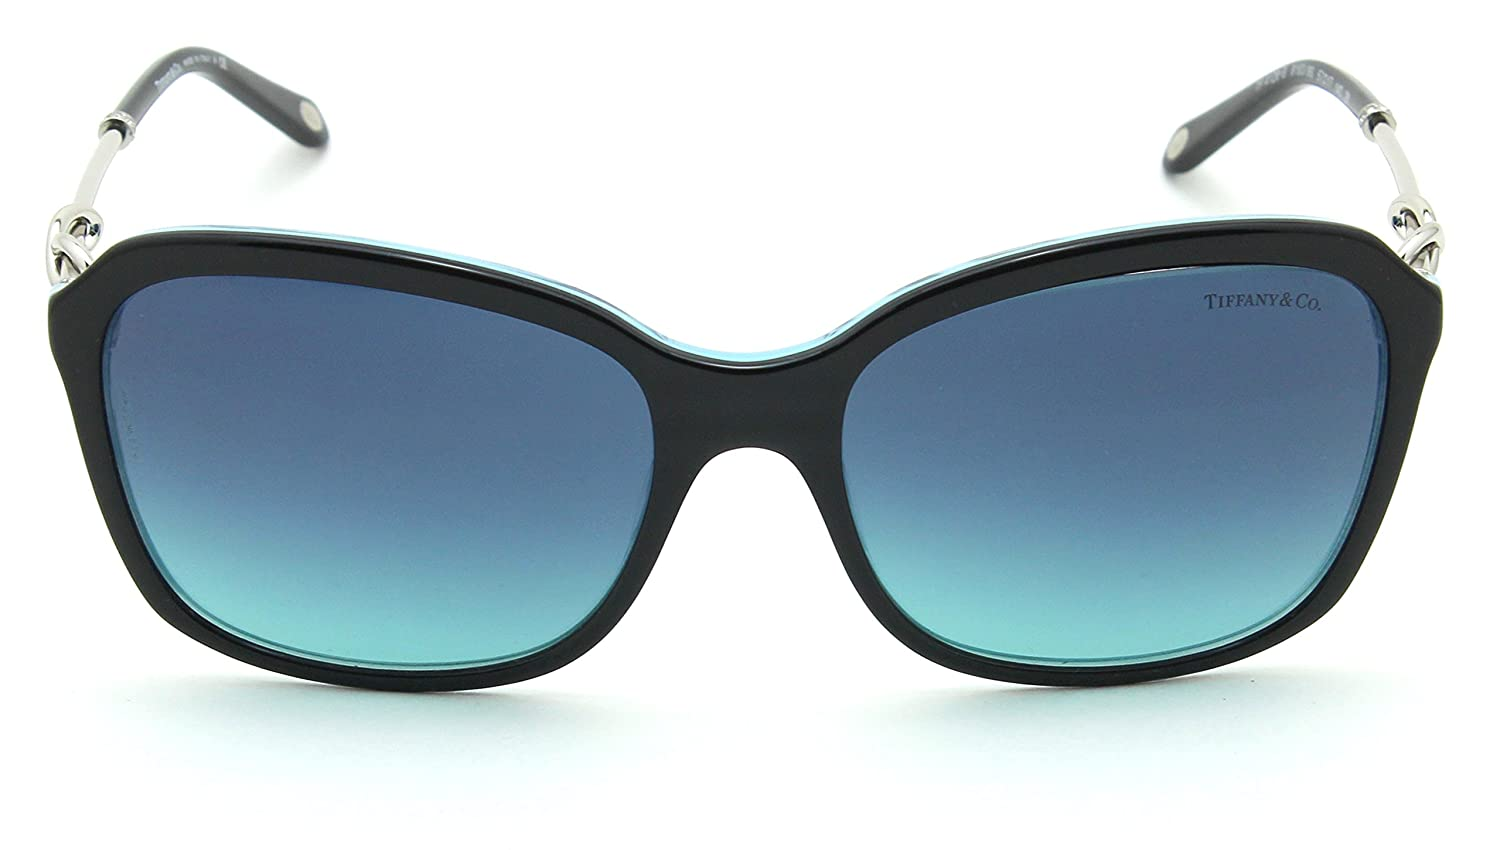 aee48d83cc9 Amazon.com  Tiffany   Co. TF 4128B Womens Rectangular Sunglasses 81939S   Clothing